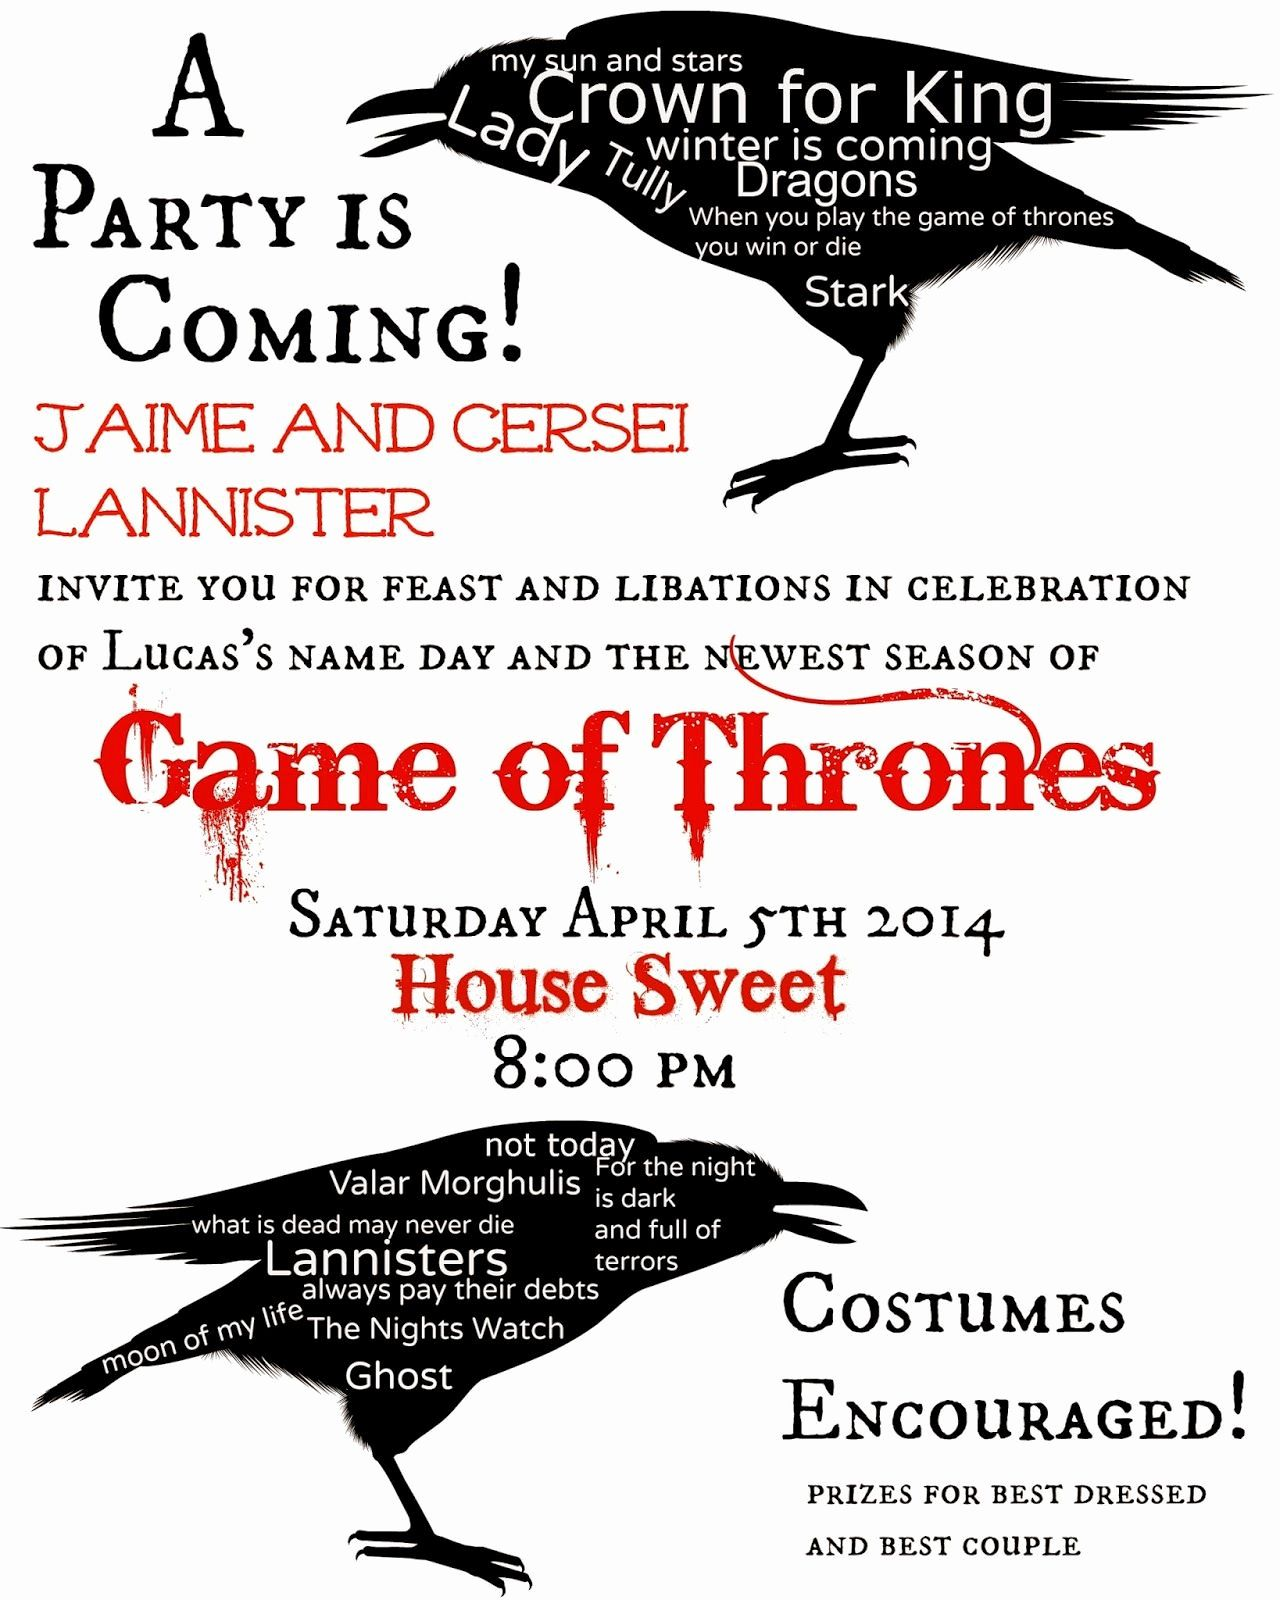 Game Of Thrones Party Invitation Luxury Game Of Thrones themed